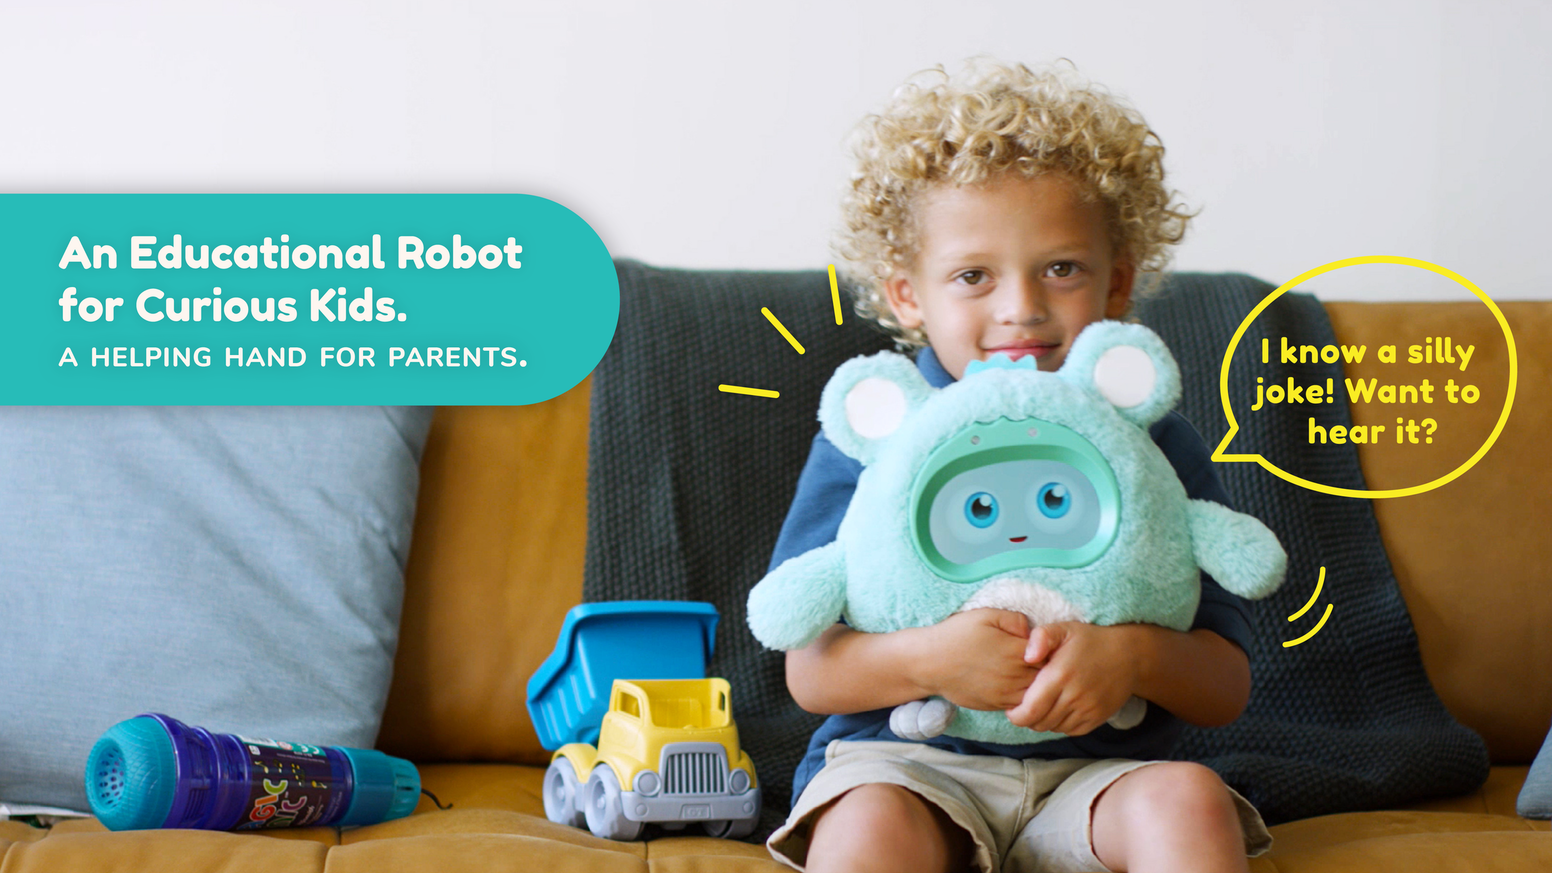 A smart educational companion who answers questions and